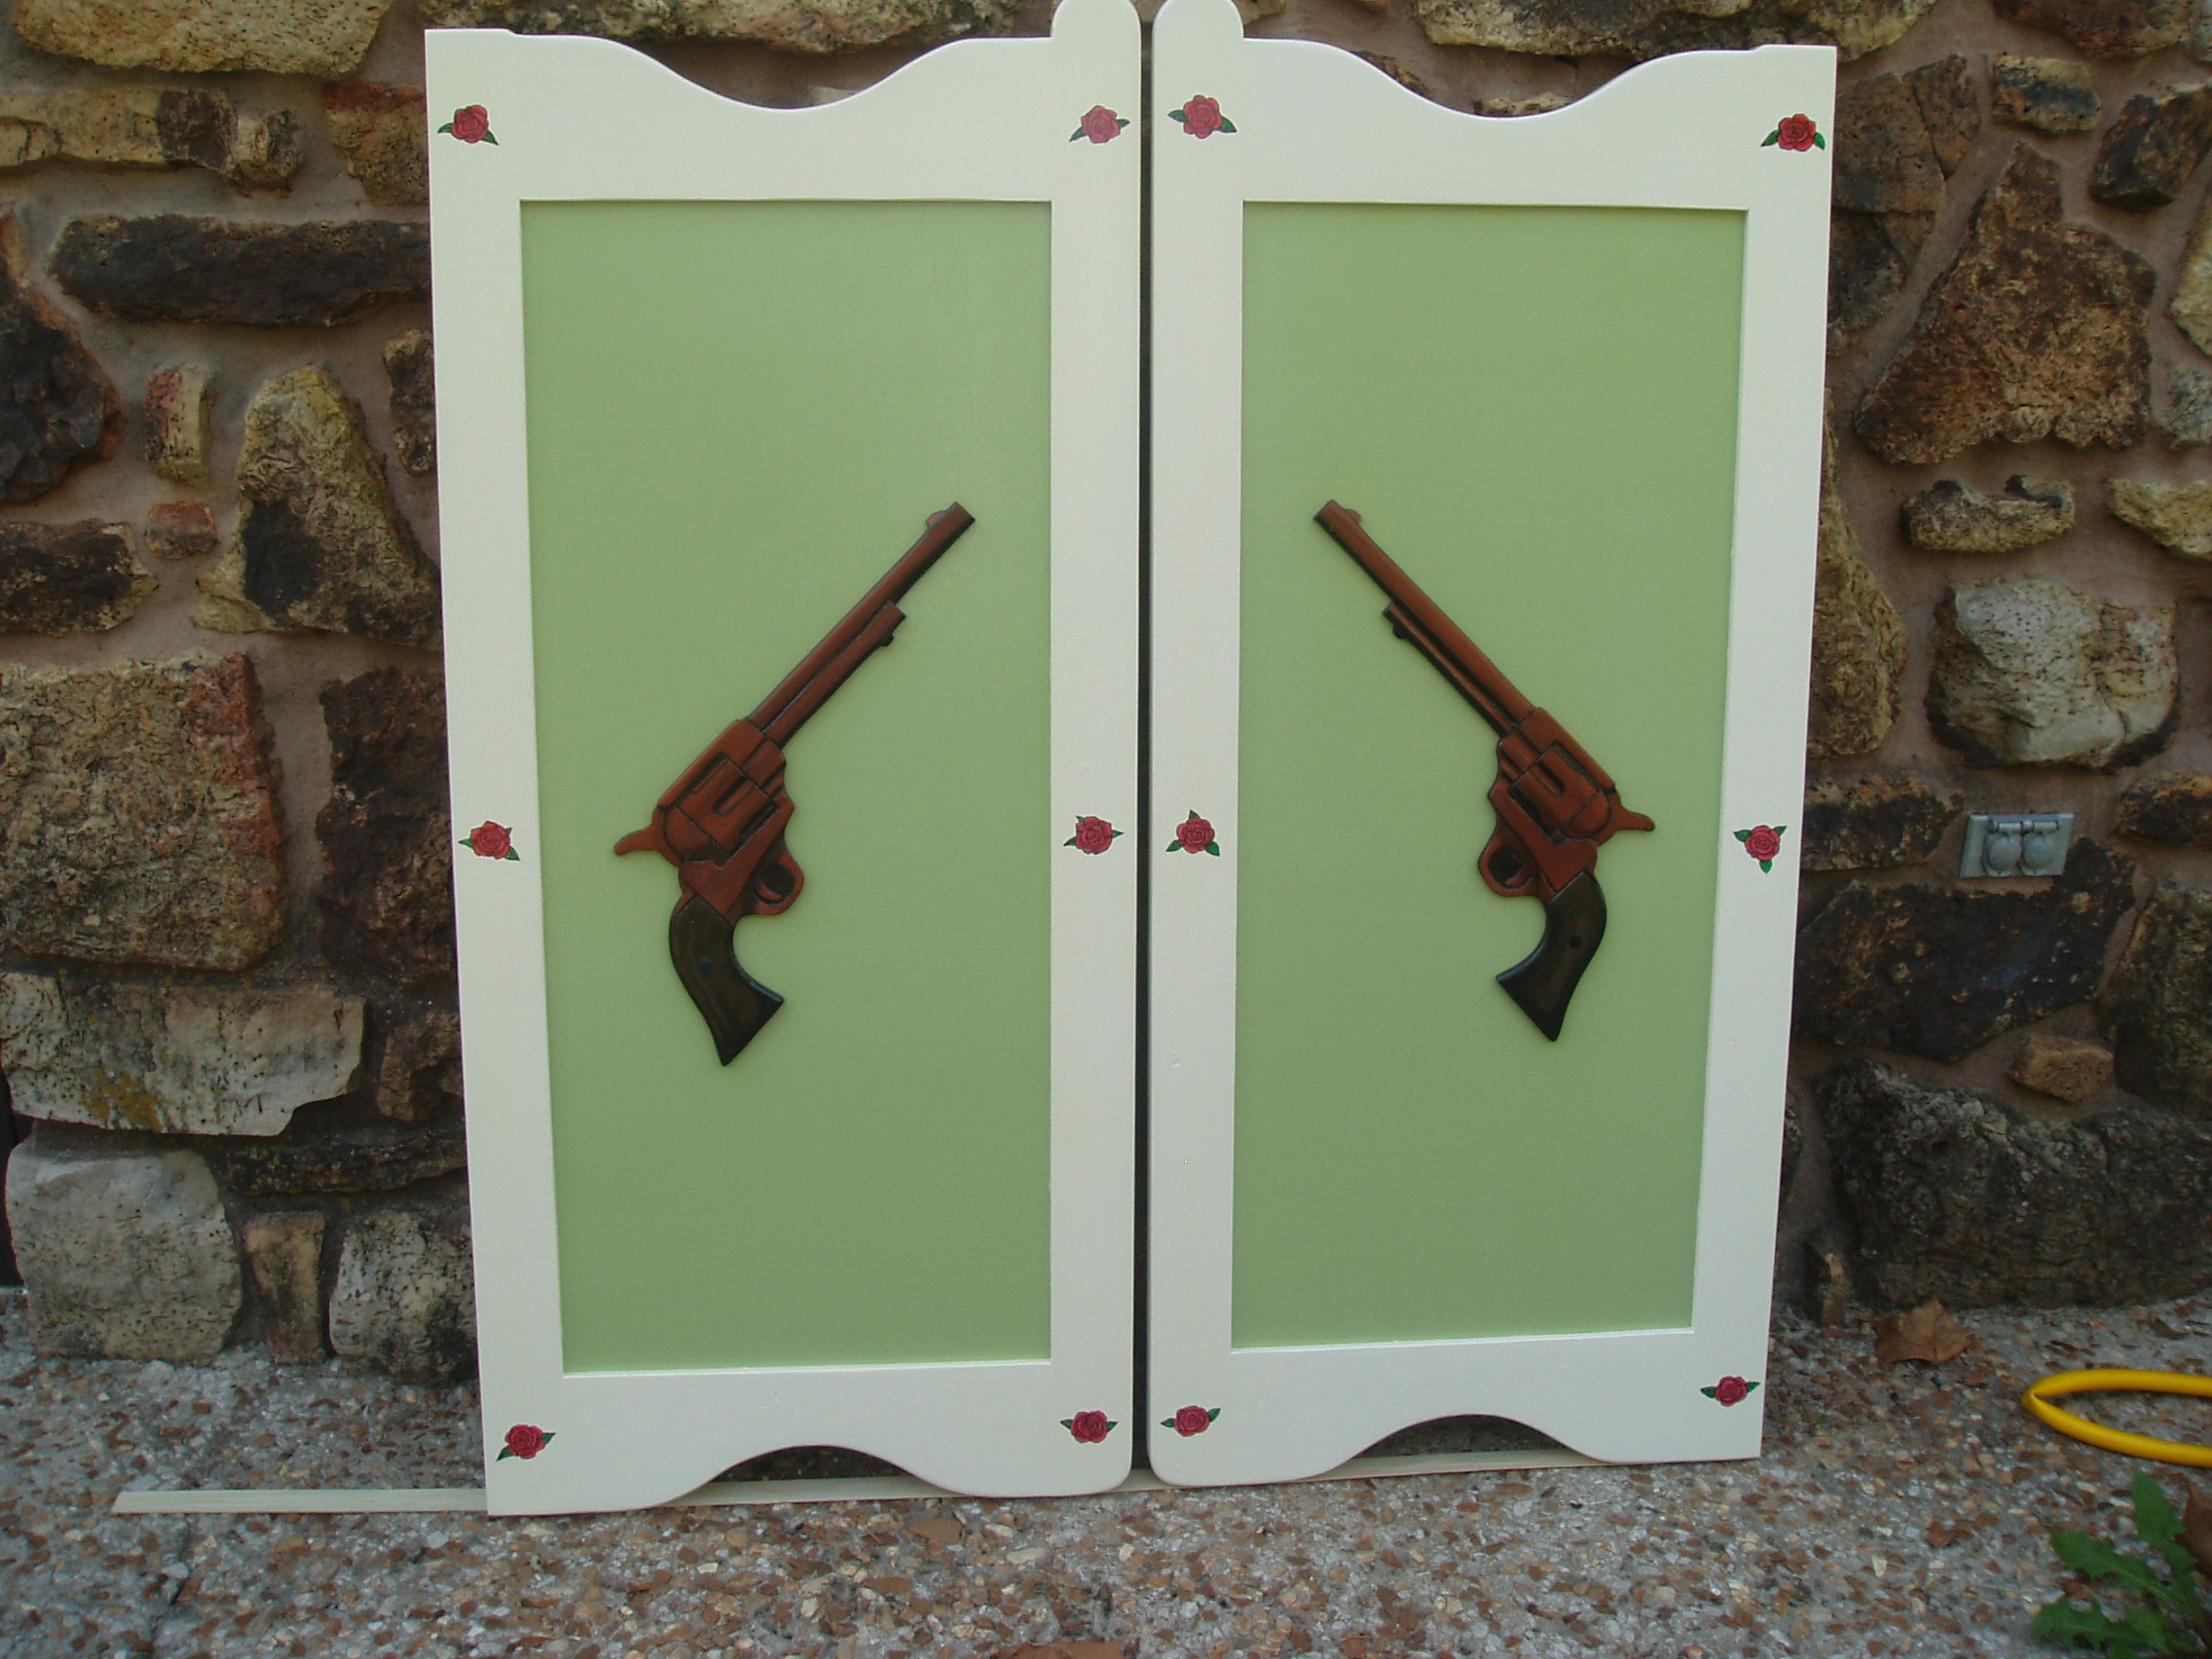 Painted western saloon doors with six shooter pistols